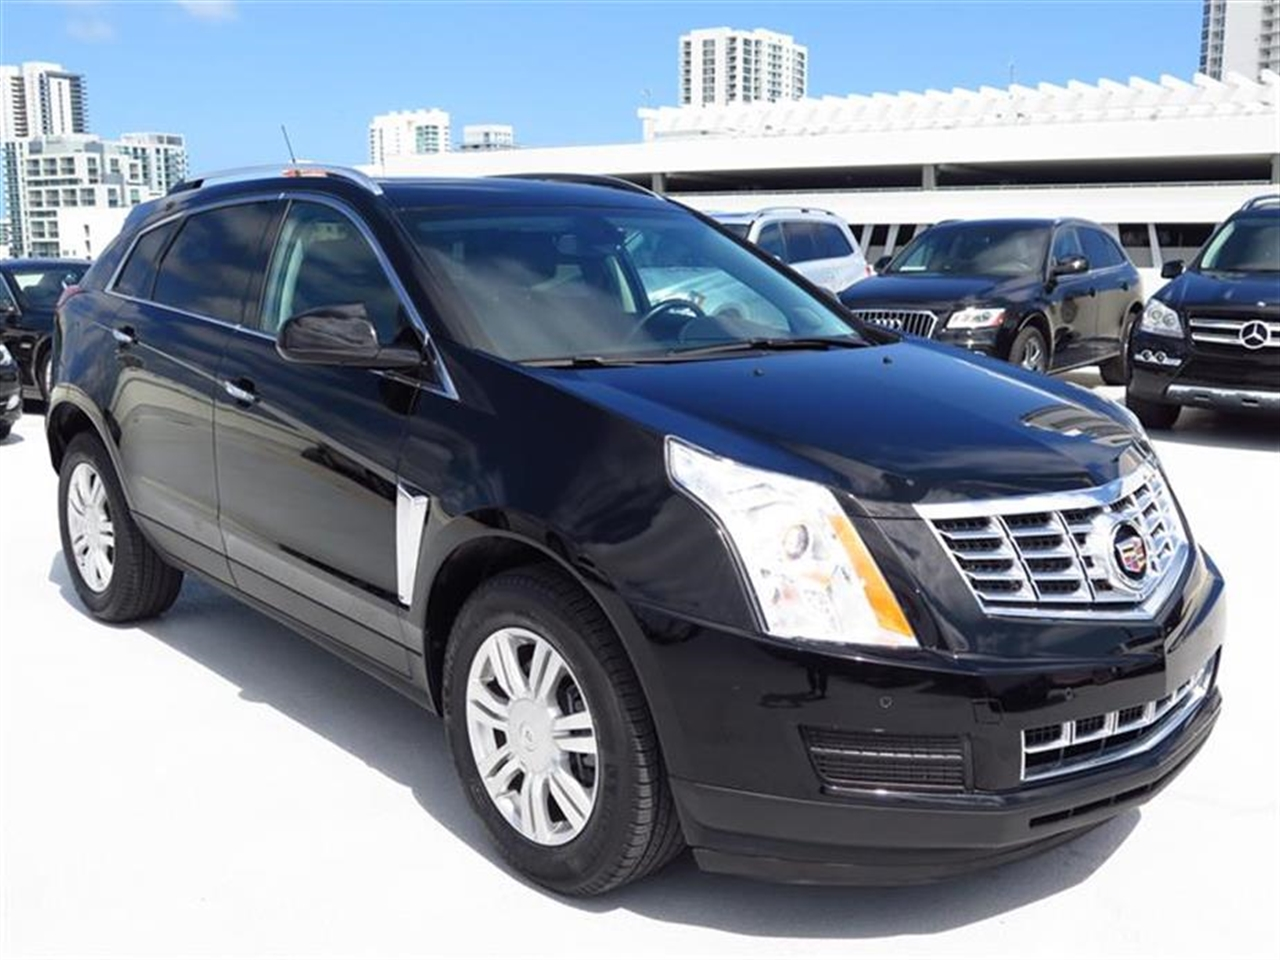 2013 CADILLAC SRX FWD 4dr Luxury Collection 11863 miles Adaptive Remote Start Armrest front cen